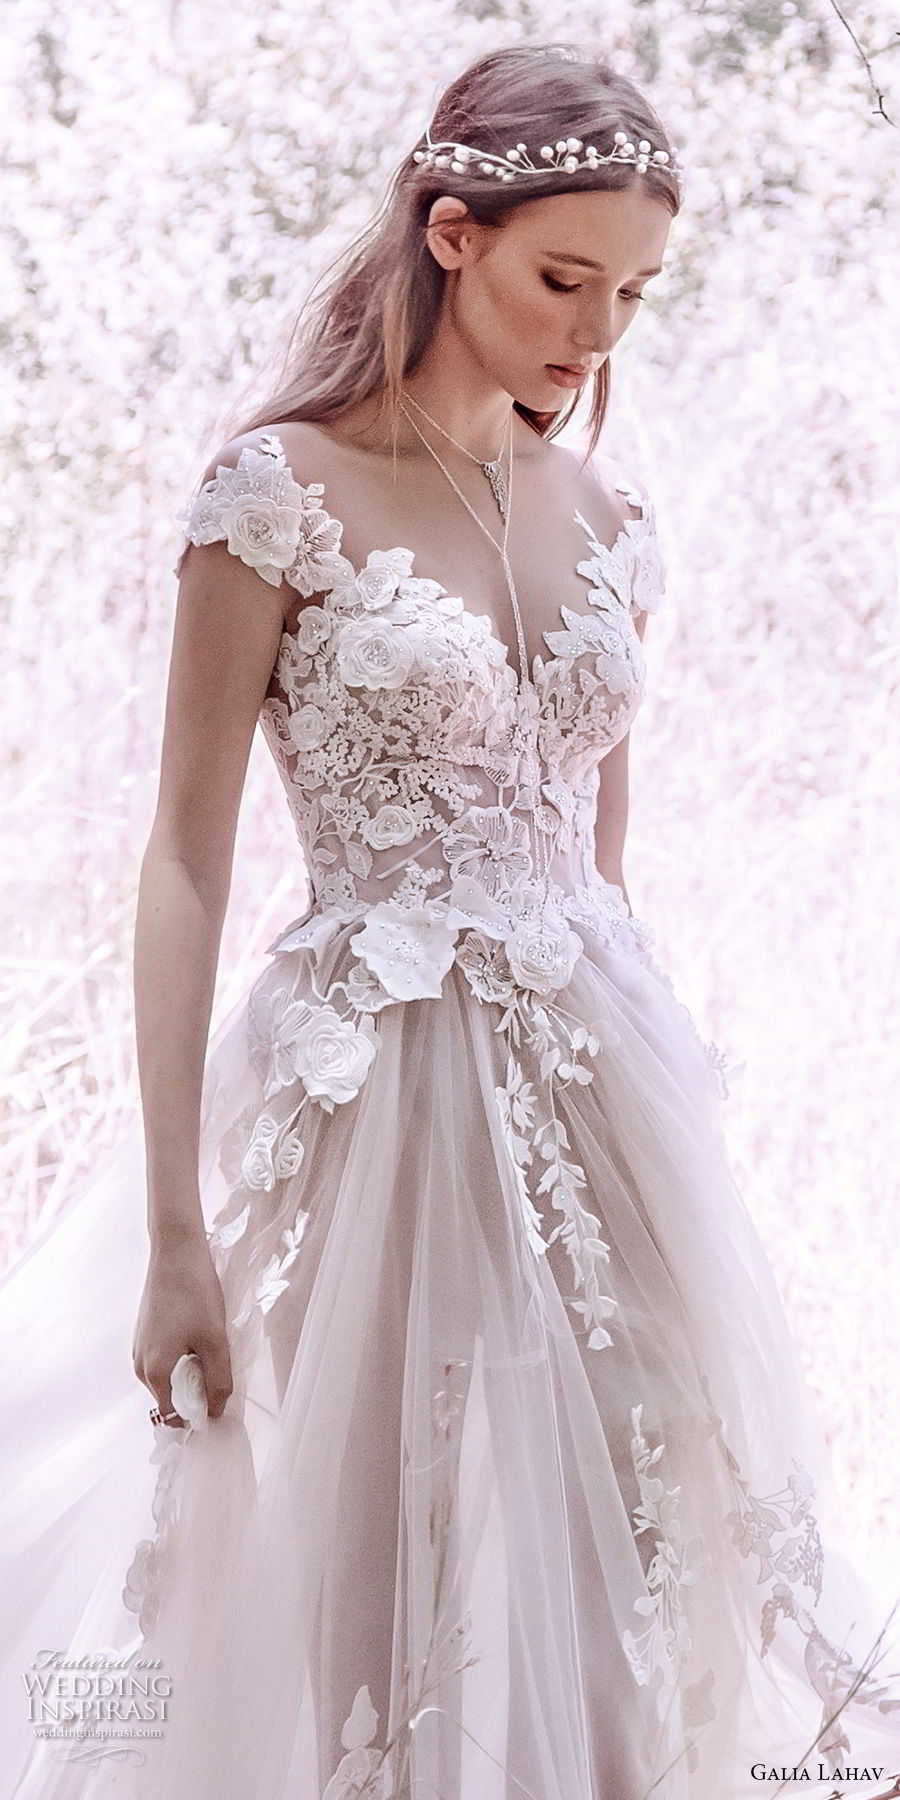 Gala by galia lahav 2018 wedding dresses bridal collection no iv gala by galia lahav 2018 wedding dresses junglespirit Images